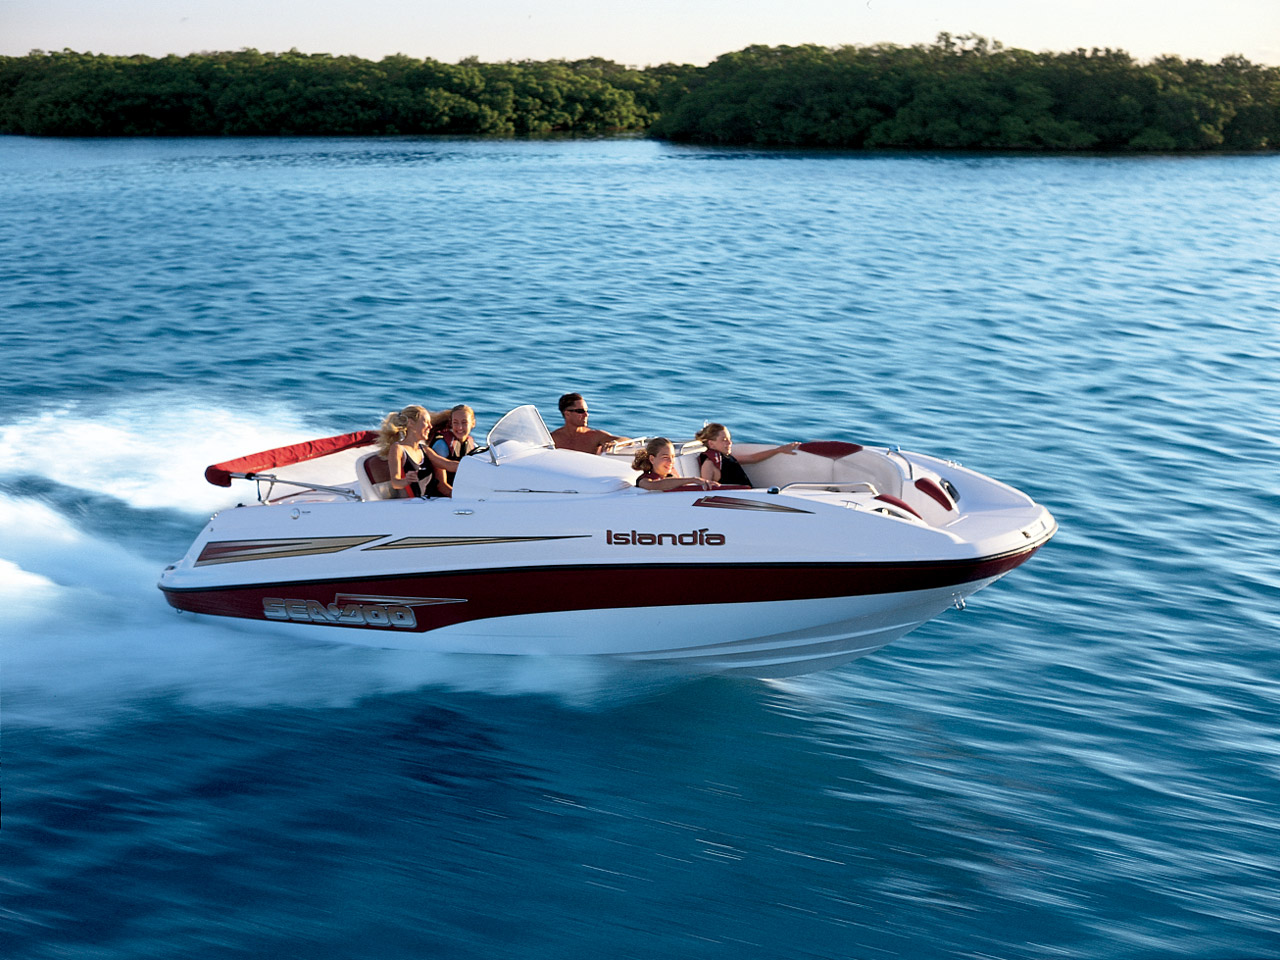 Boat sharing: Do you want a Renter or a Boat Sharing Partner?